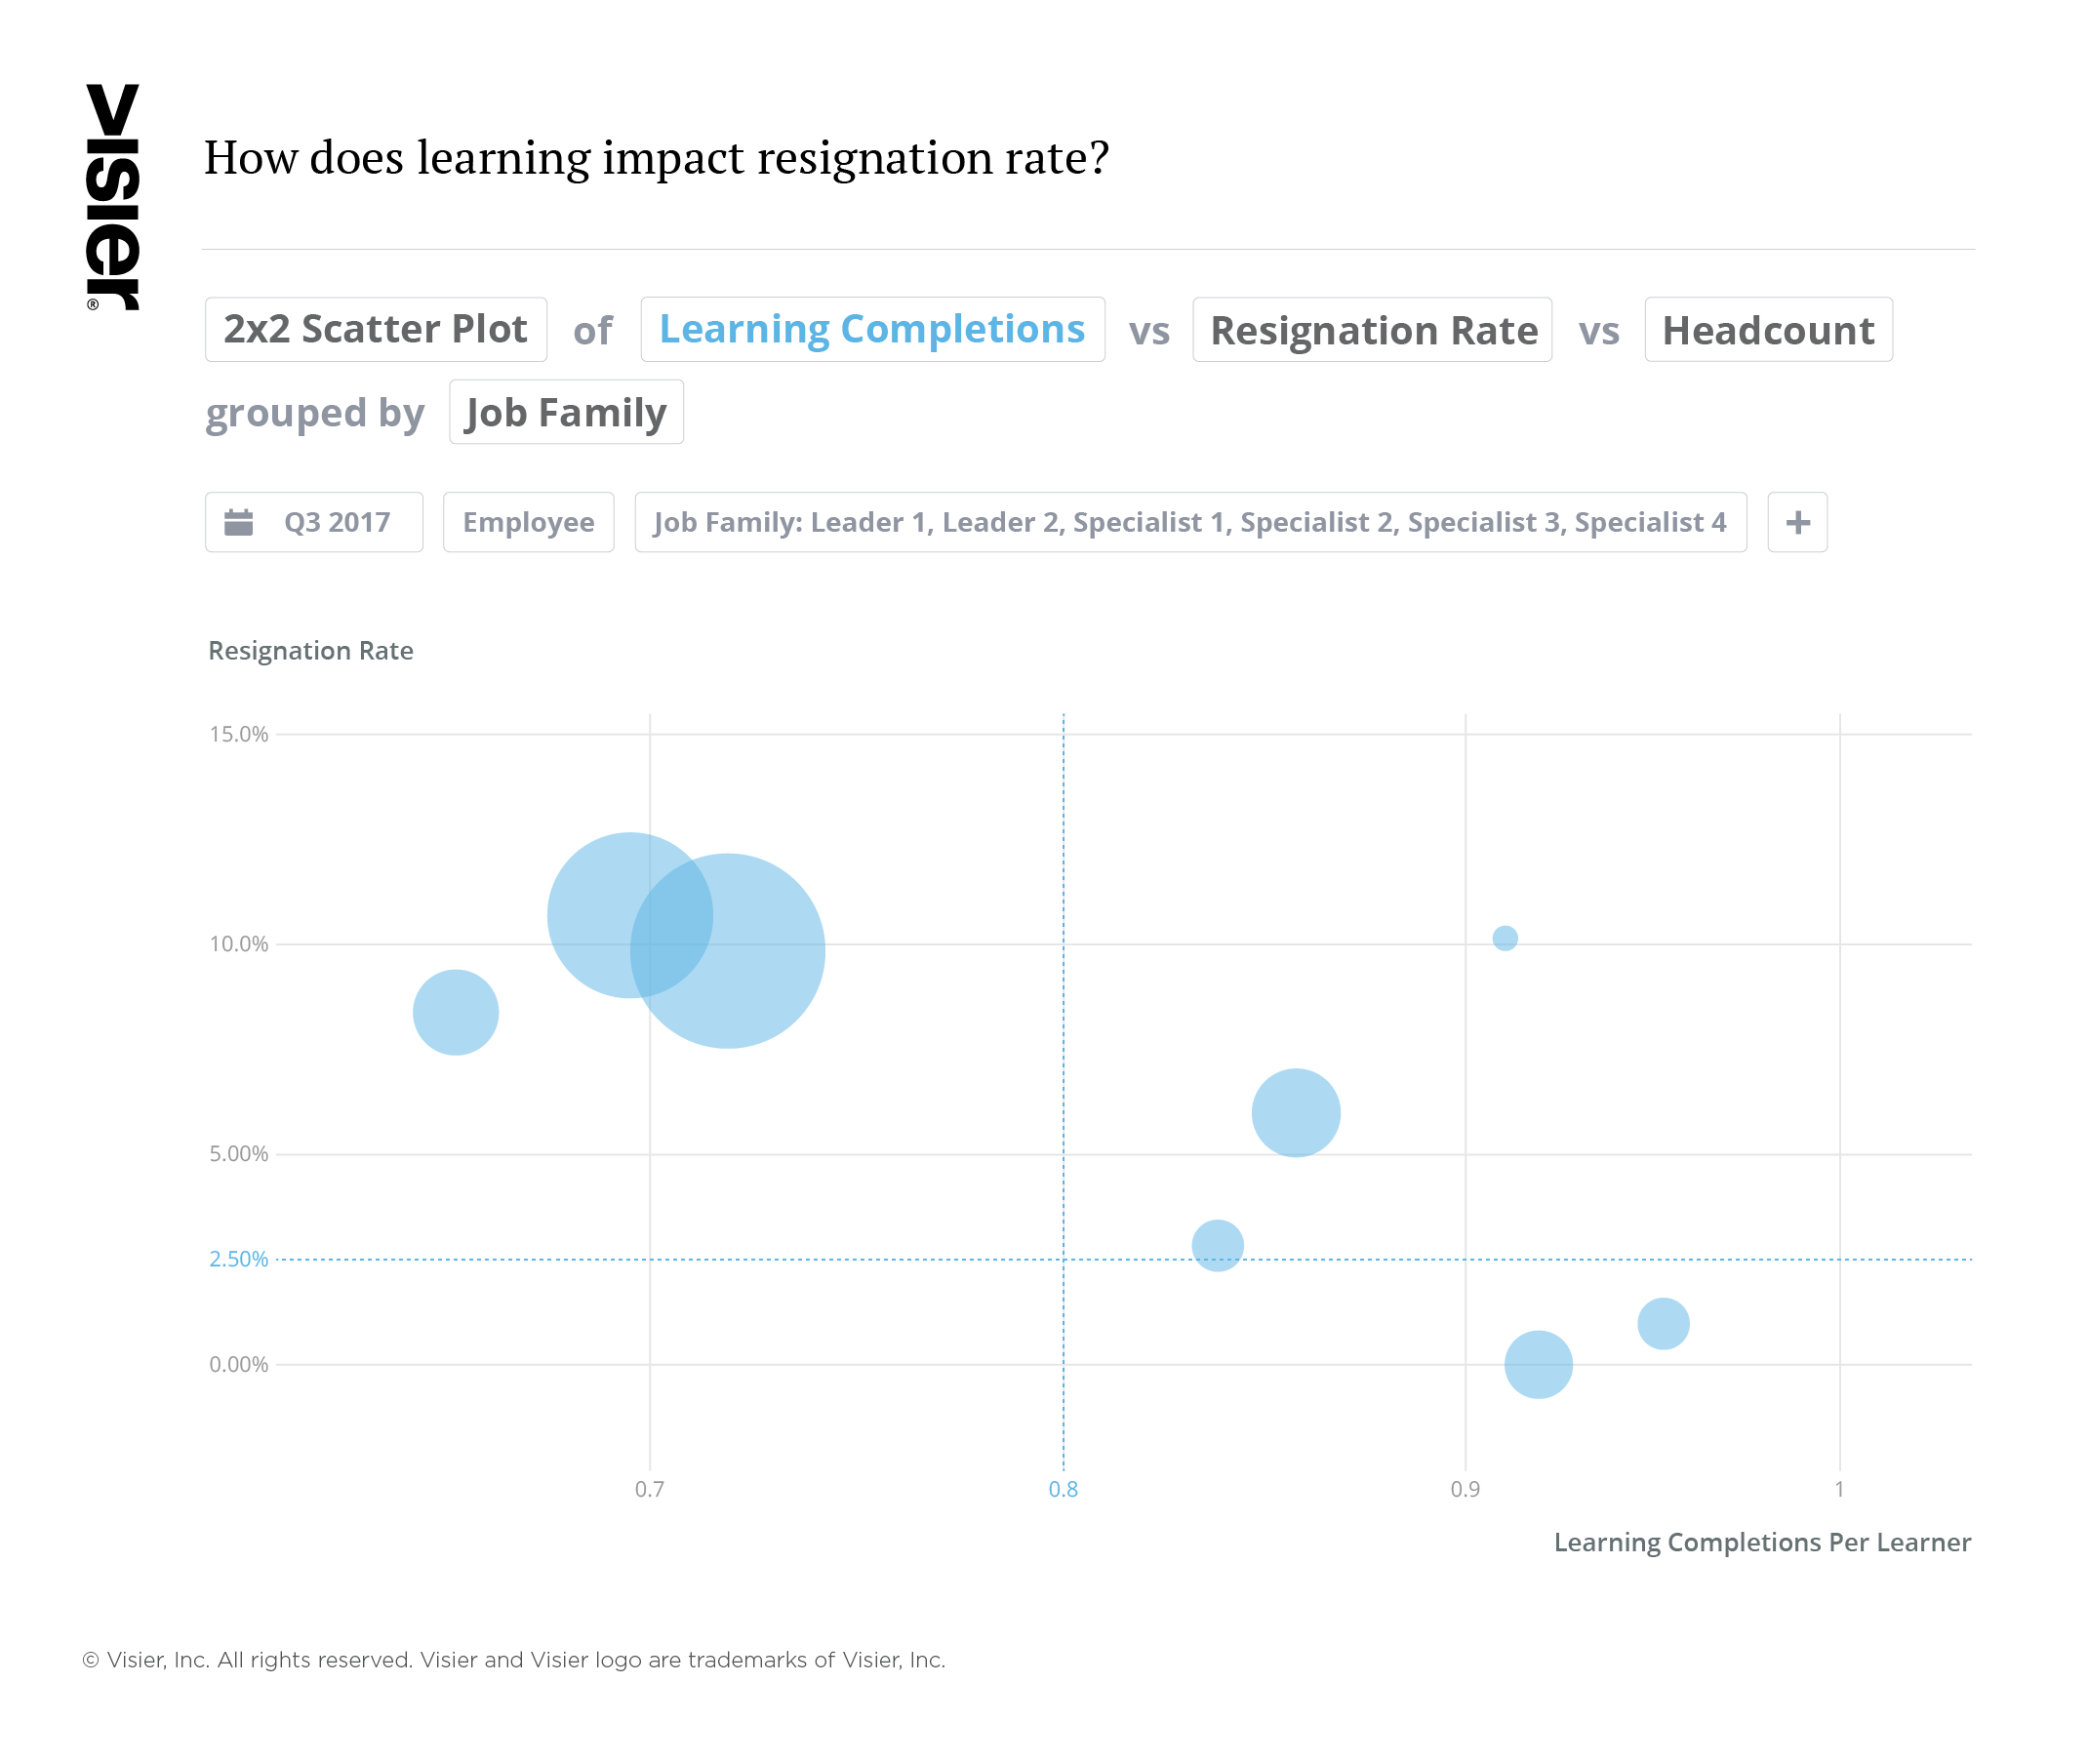 Visier People® Learning data visualization showing how learning and development impacts resignation rates